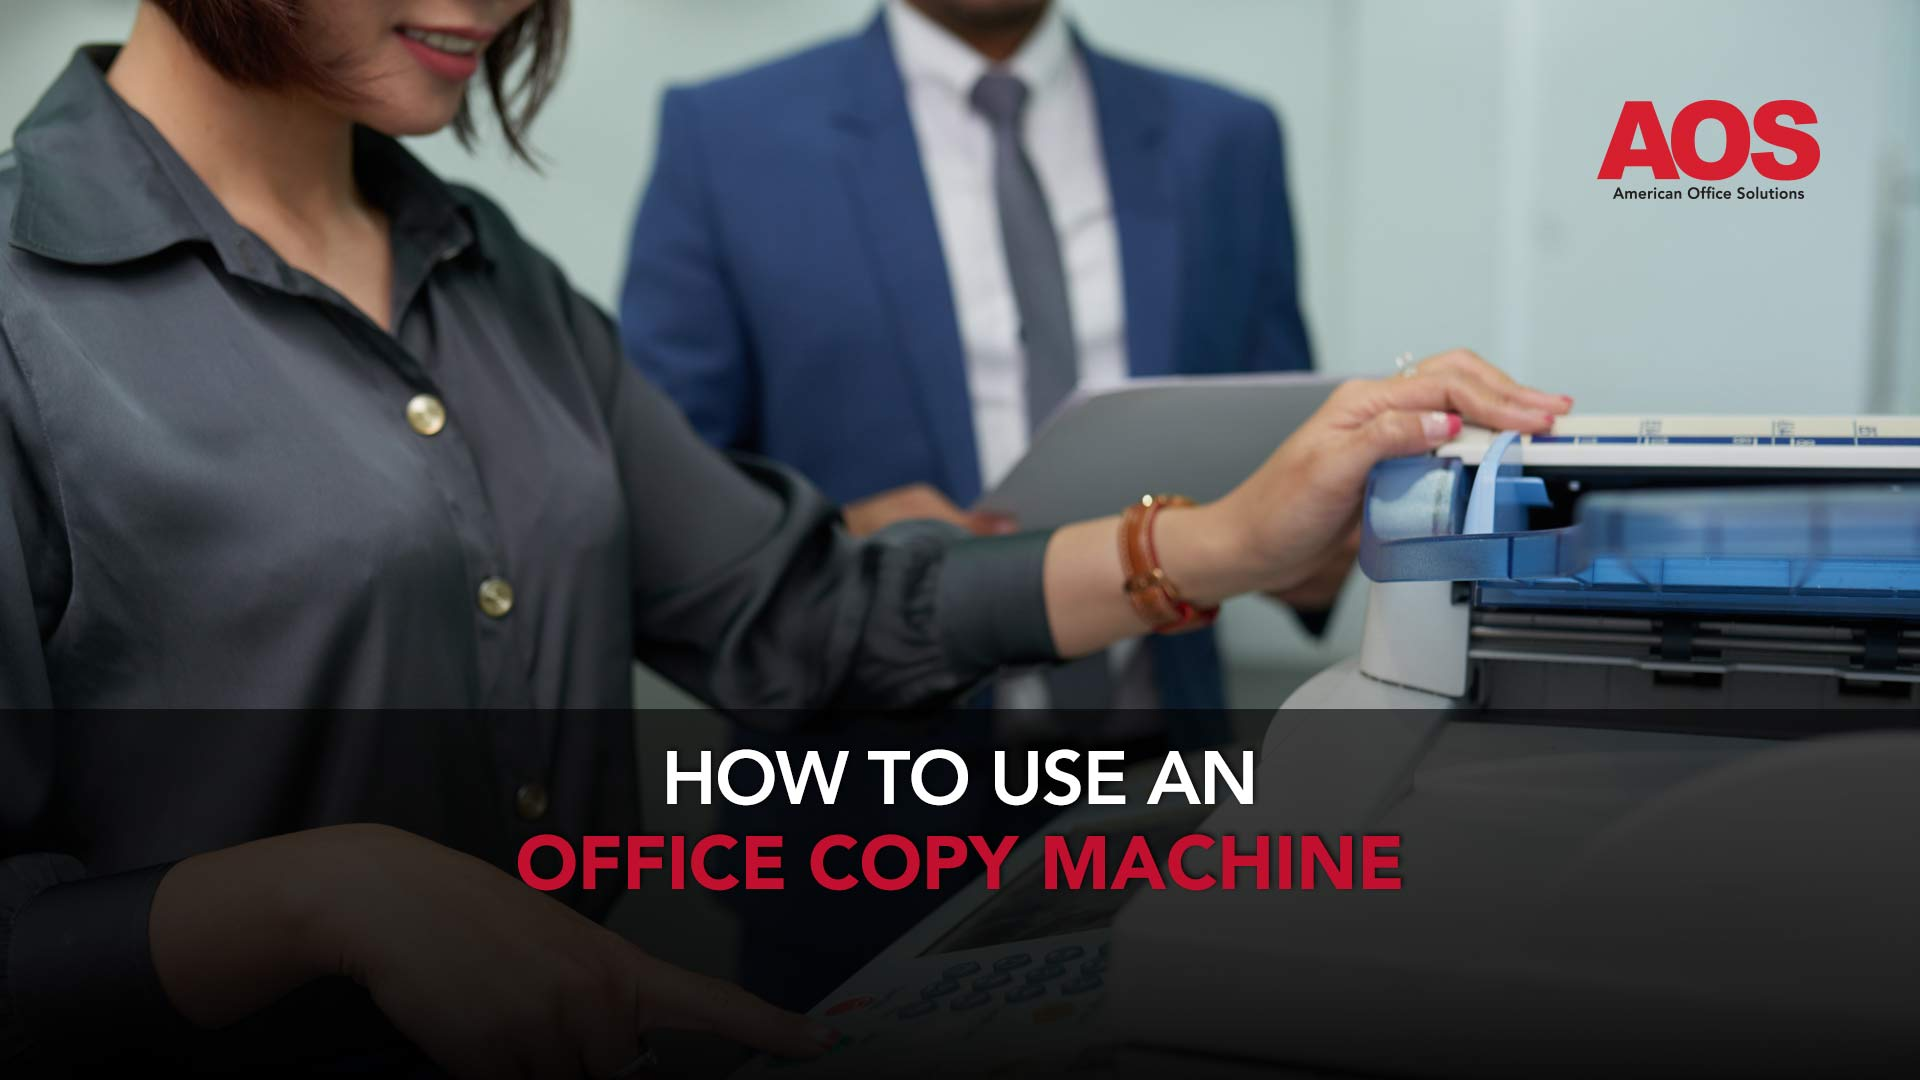 Next How To Use An Office Copy Machine